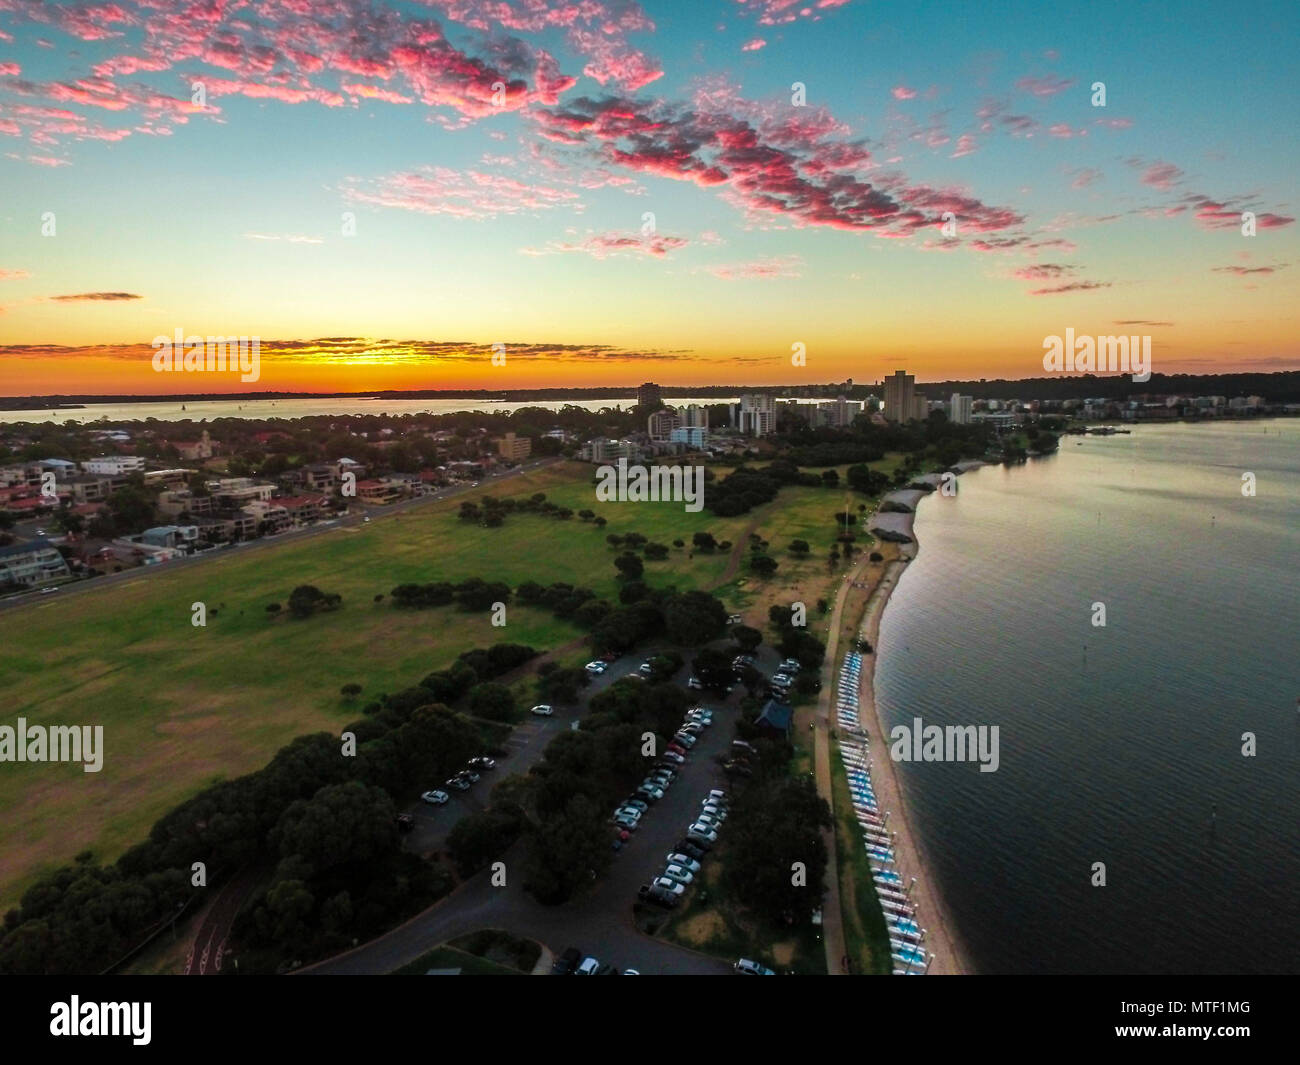 Sunset in Australia captured from a drone - Stock Image